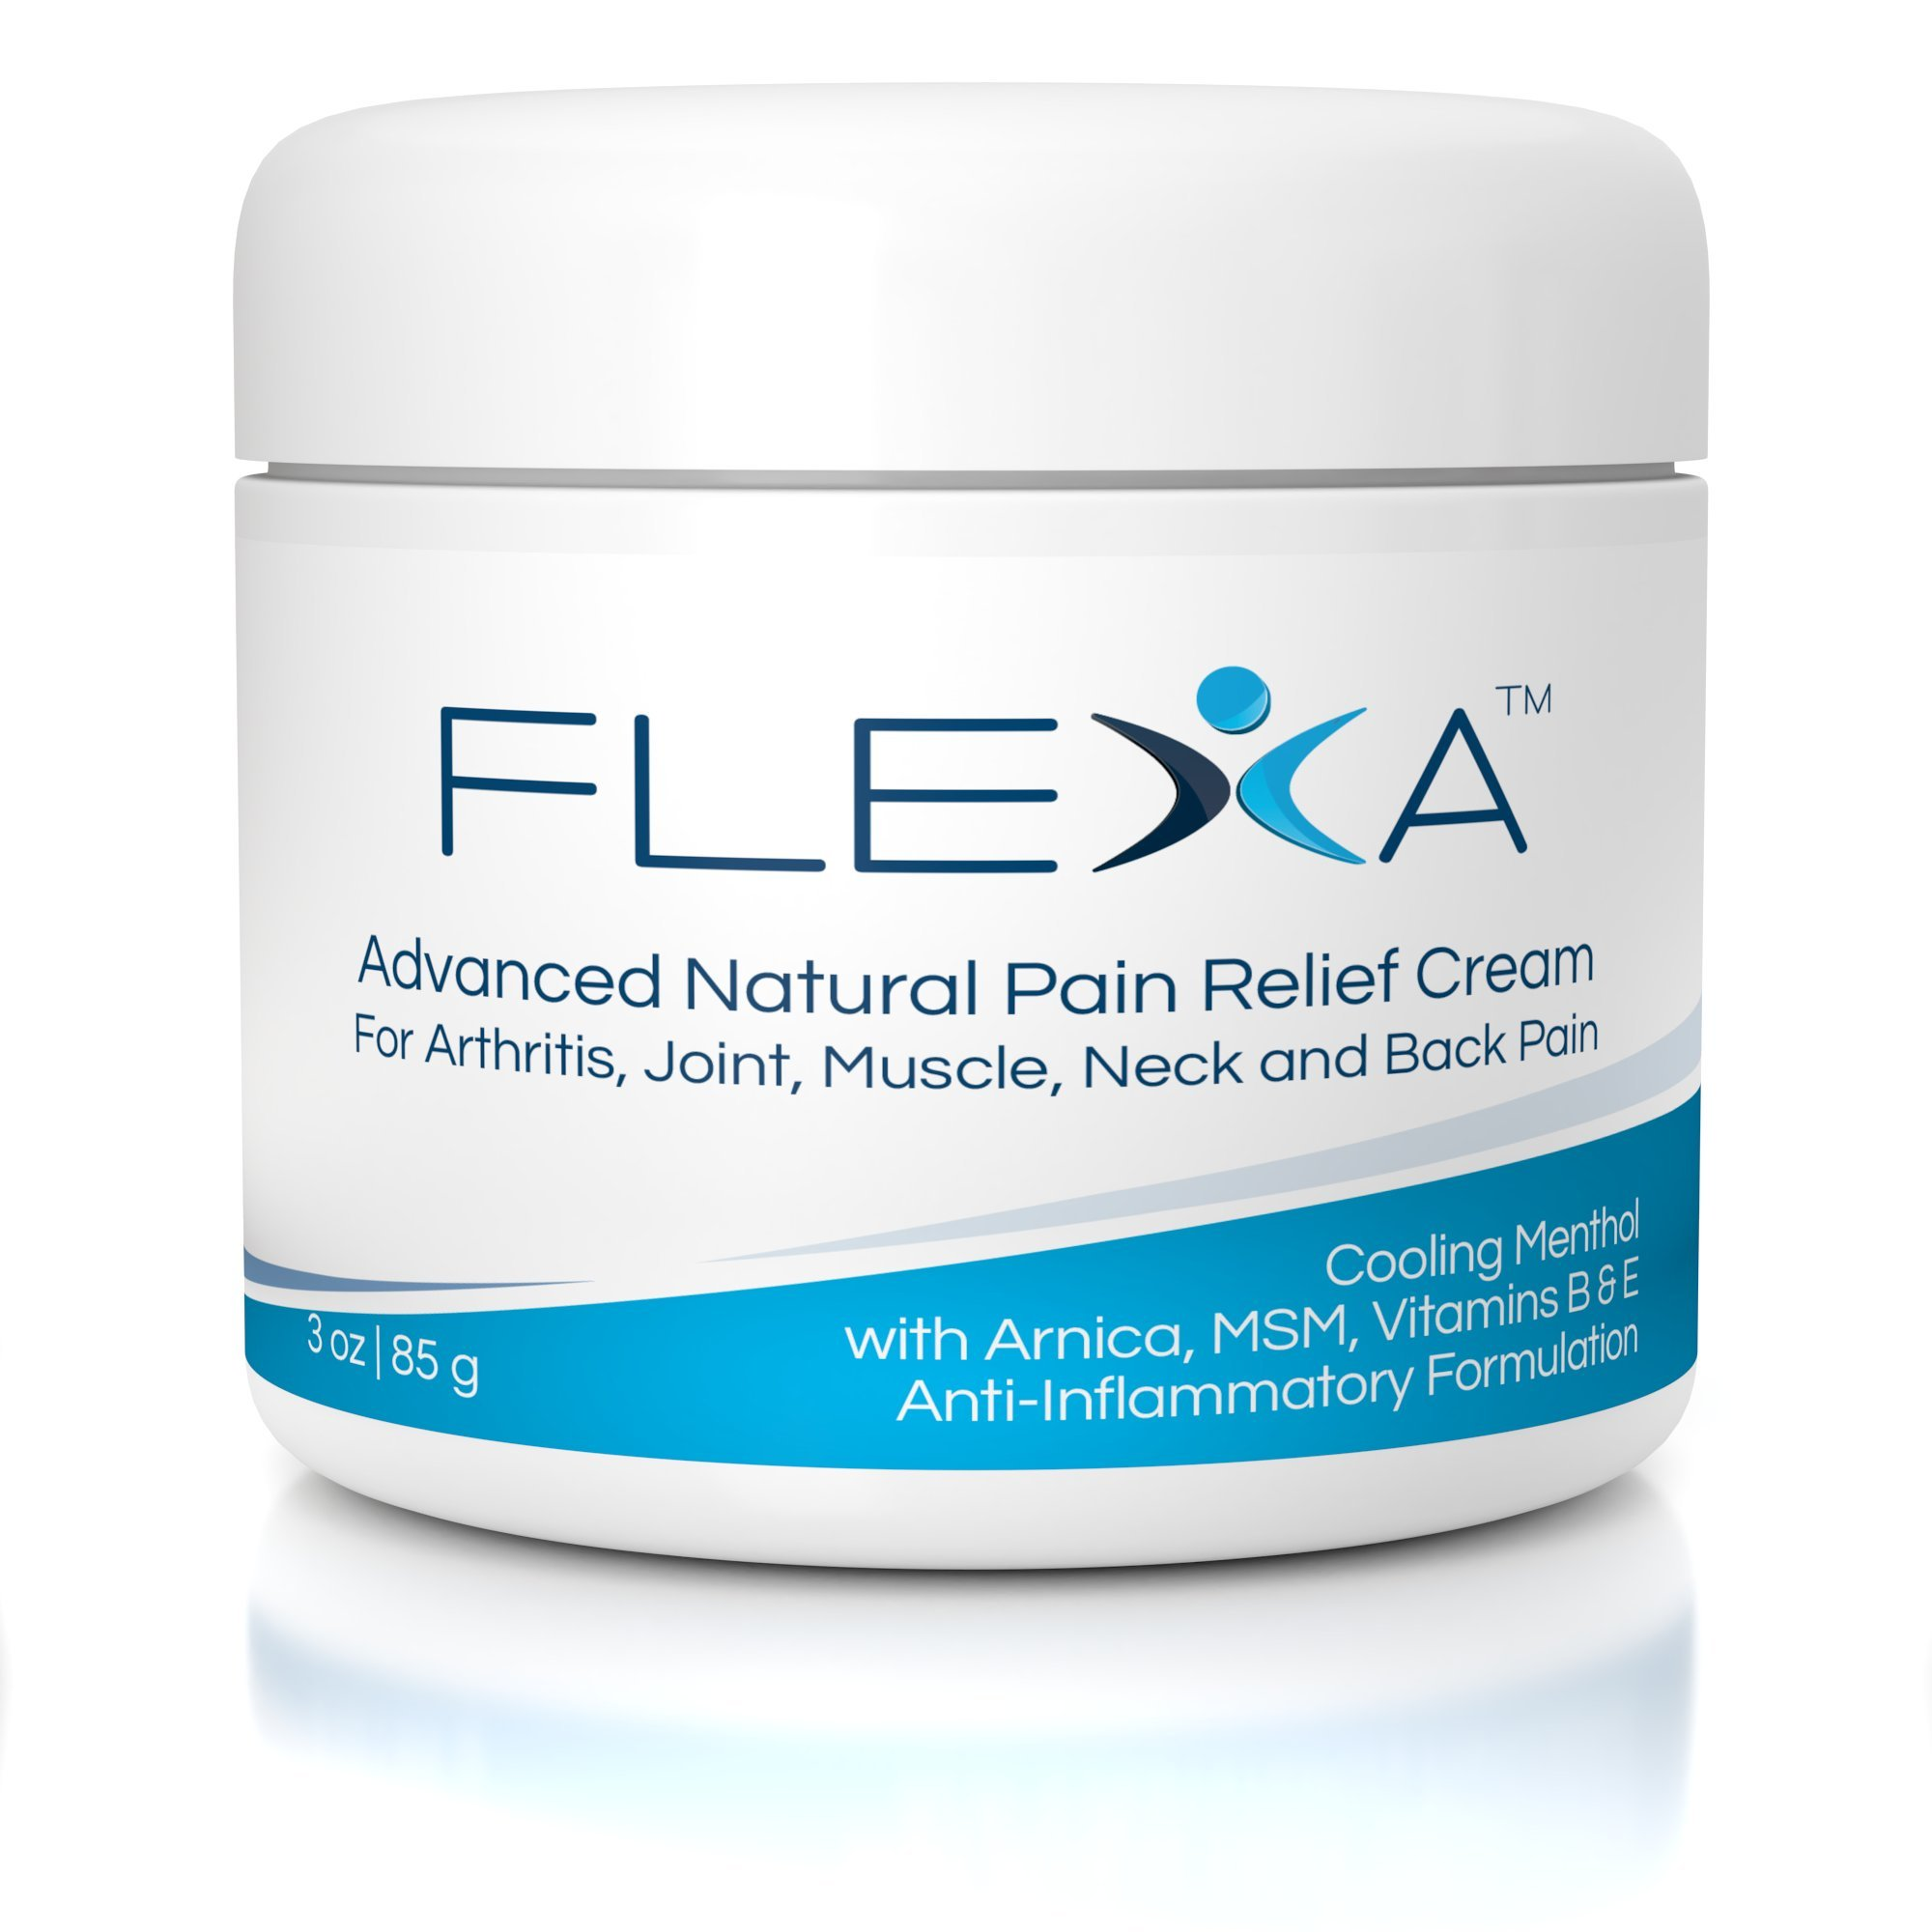 FLEXA Advanced Natural Arnica and Menthol Pain Relief Cream: Powerful, fast cooling relief of Arthritis, Joint and Muscle Pain by FLEXA